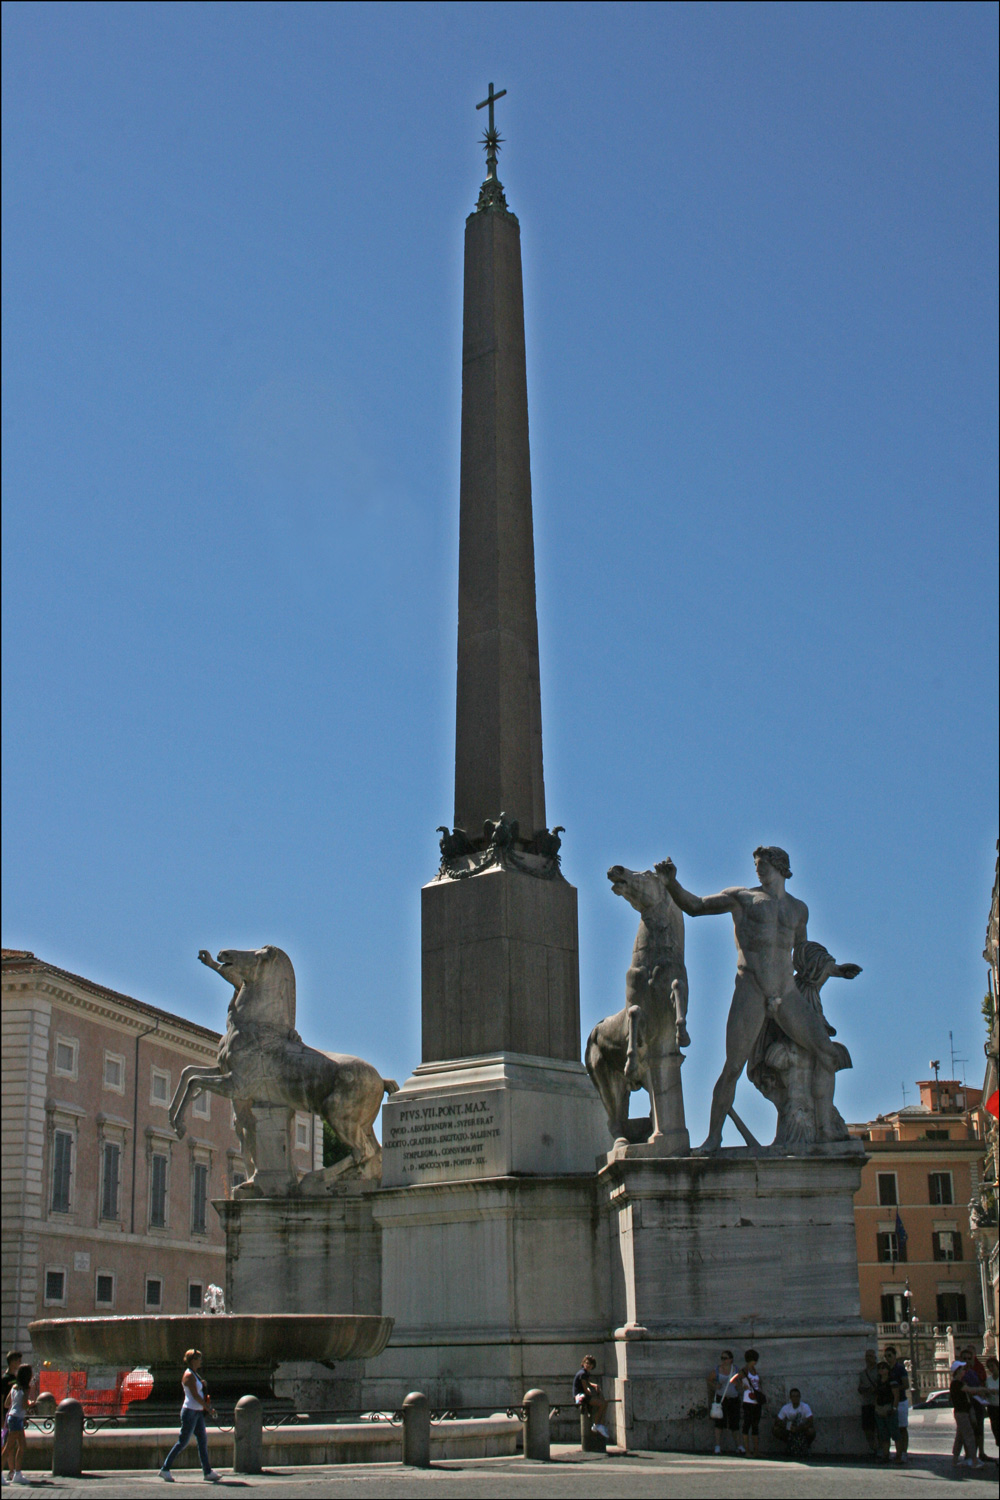 The Obelisk at Piazza del Quirinale